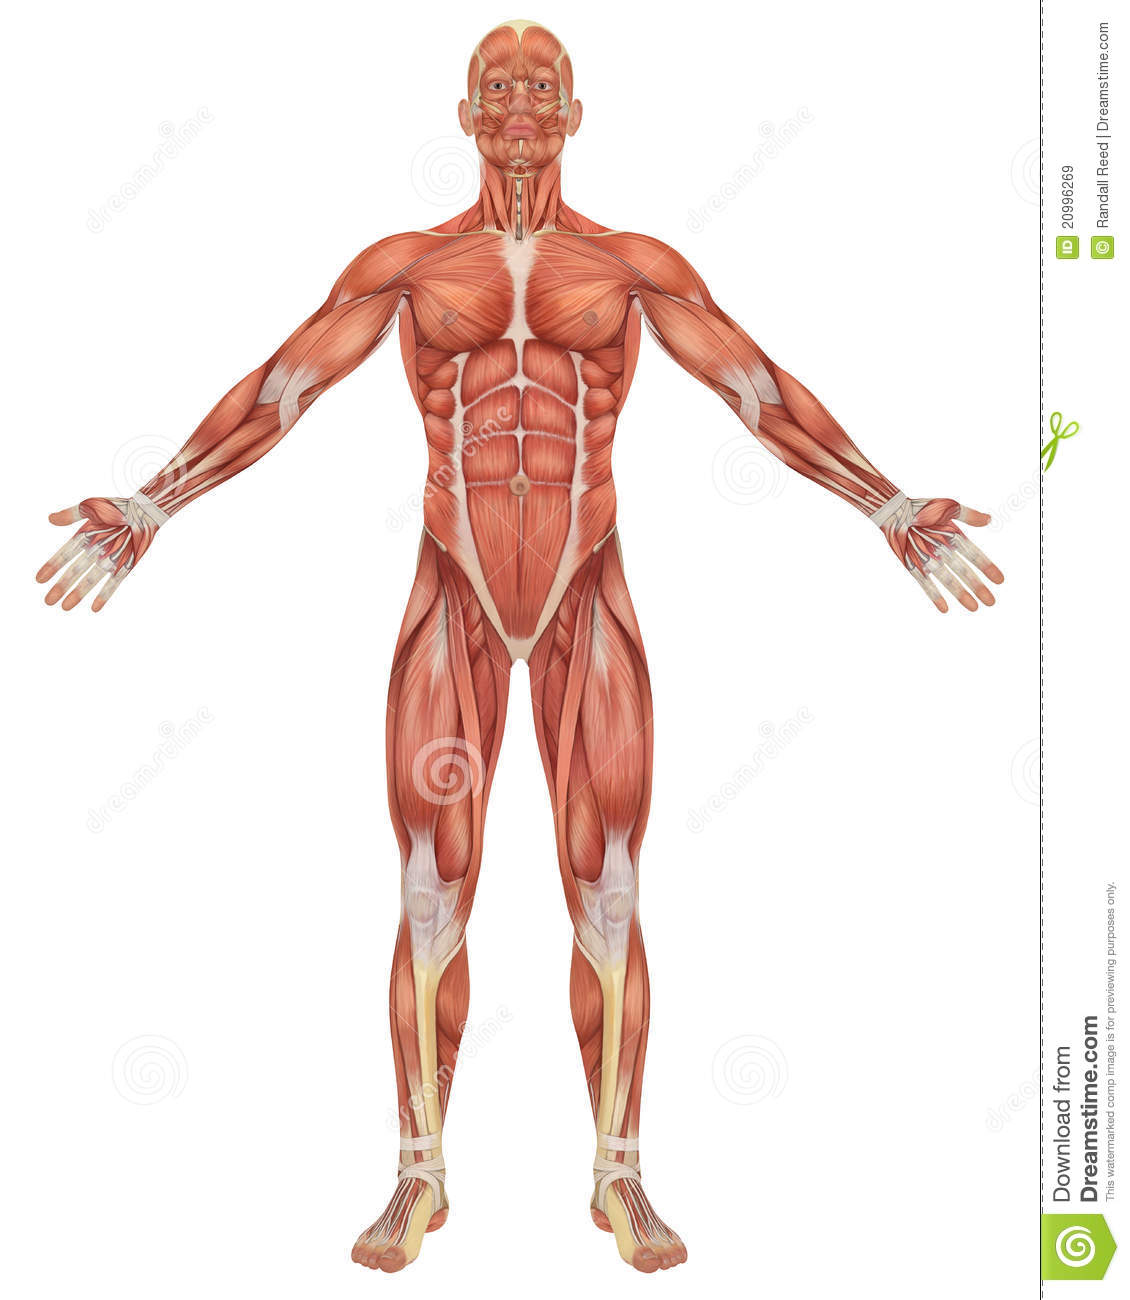 Muscular System Unlabeled